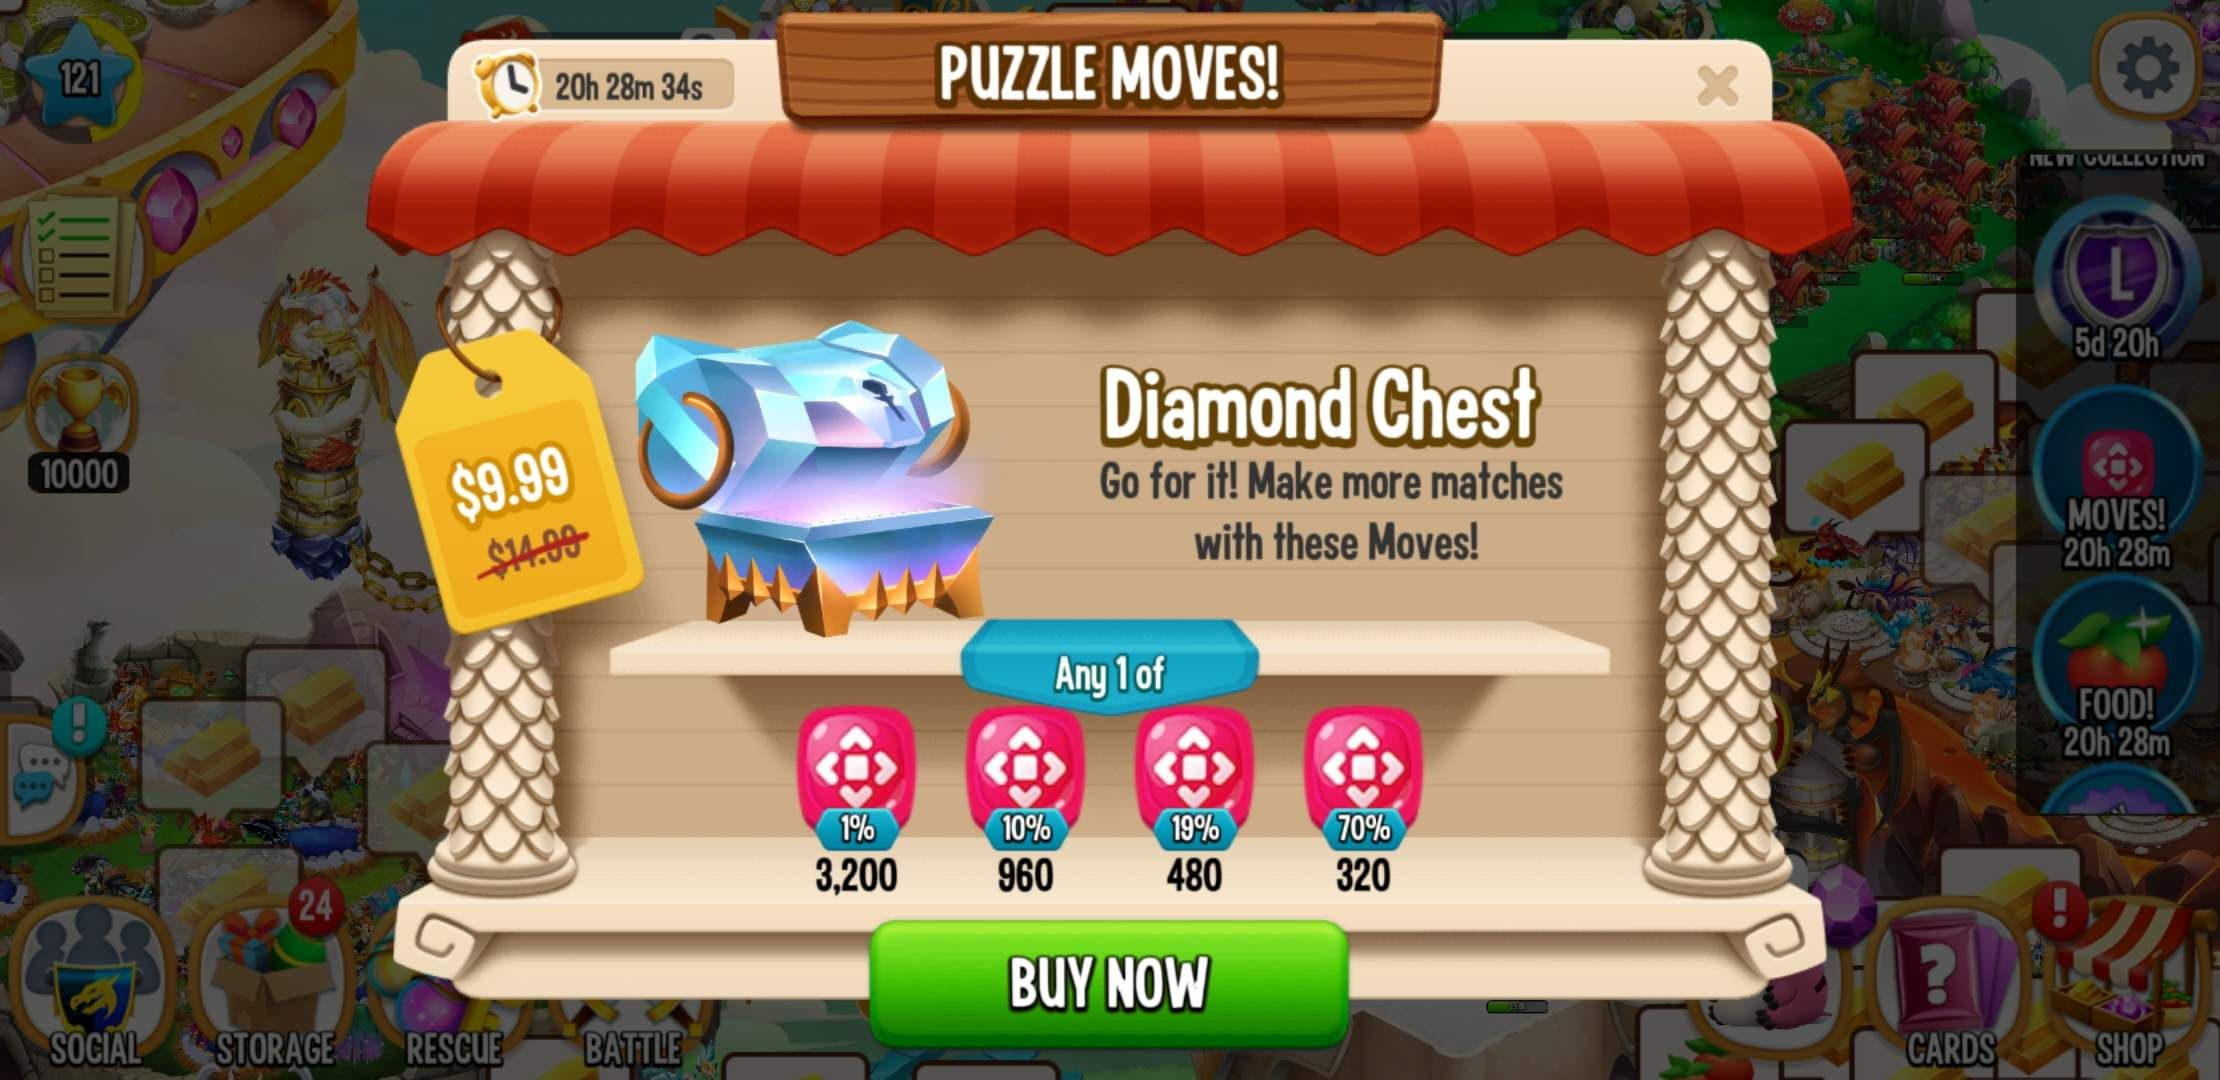 0_1596807410722_nyn puzzle chest offer.jpg